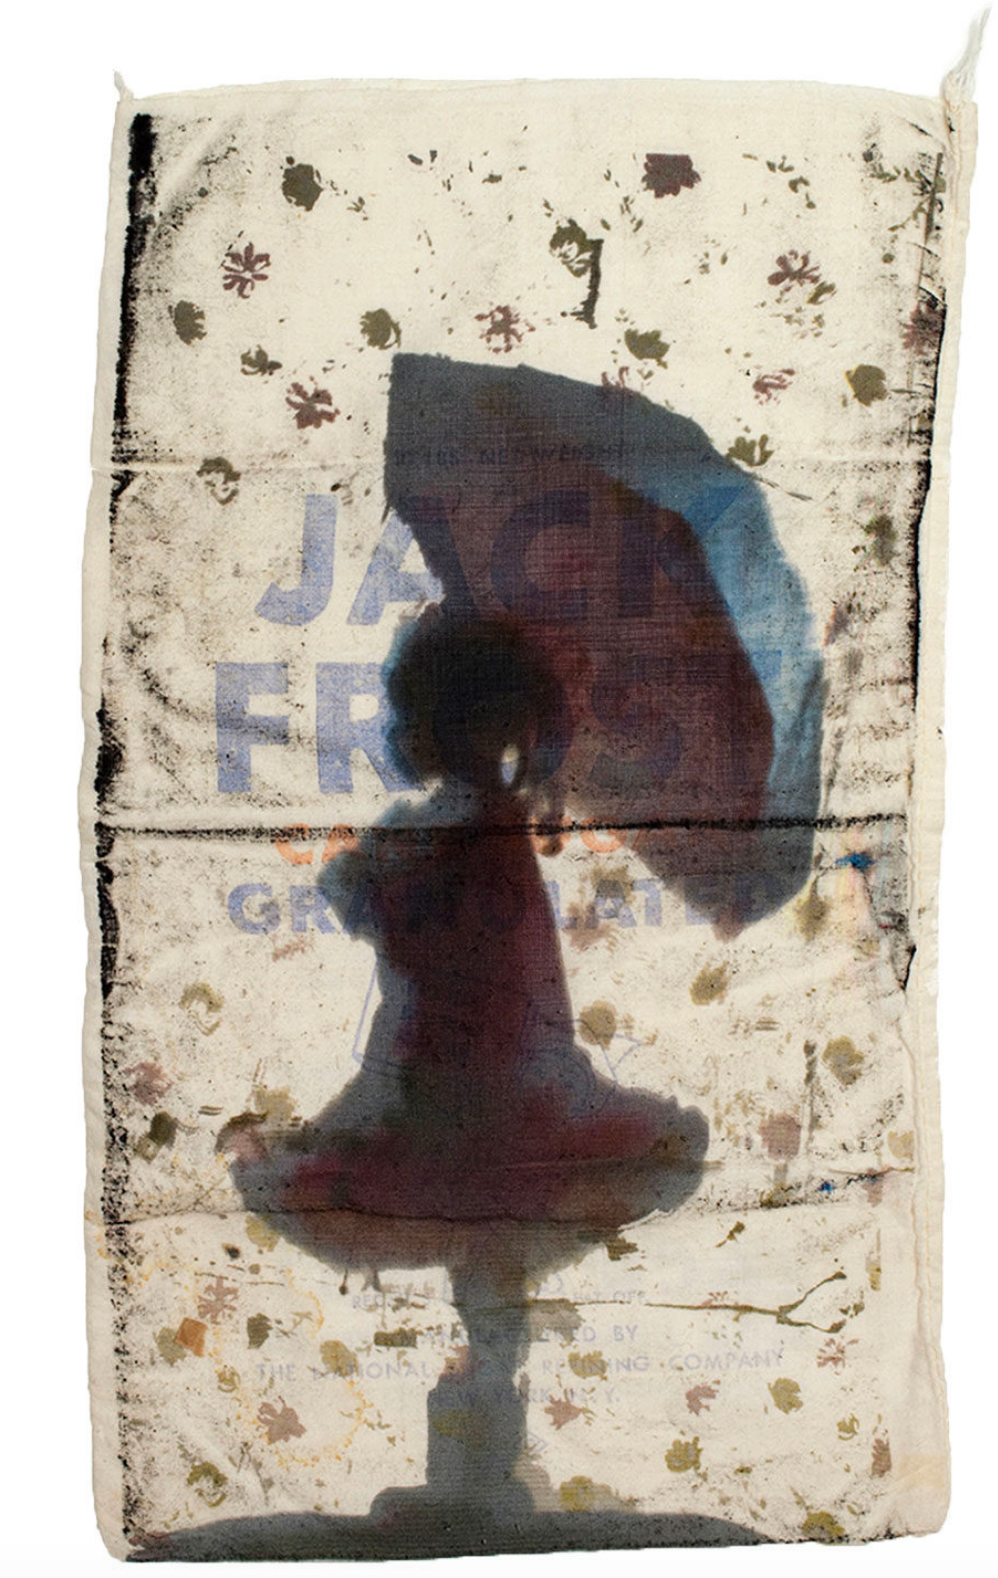 printed flour sack with image of black girl child with umbrella